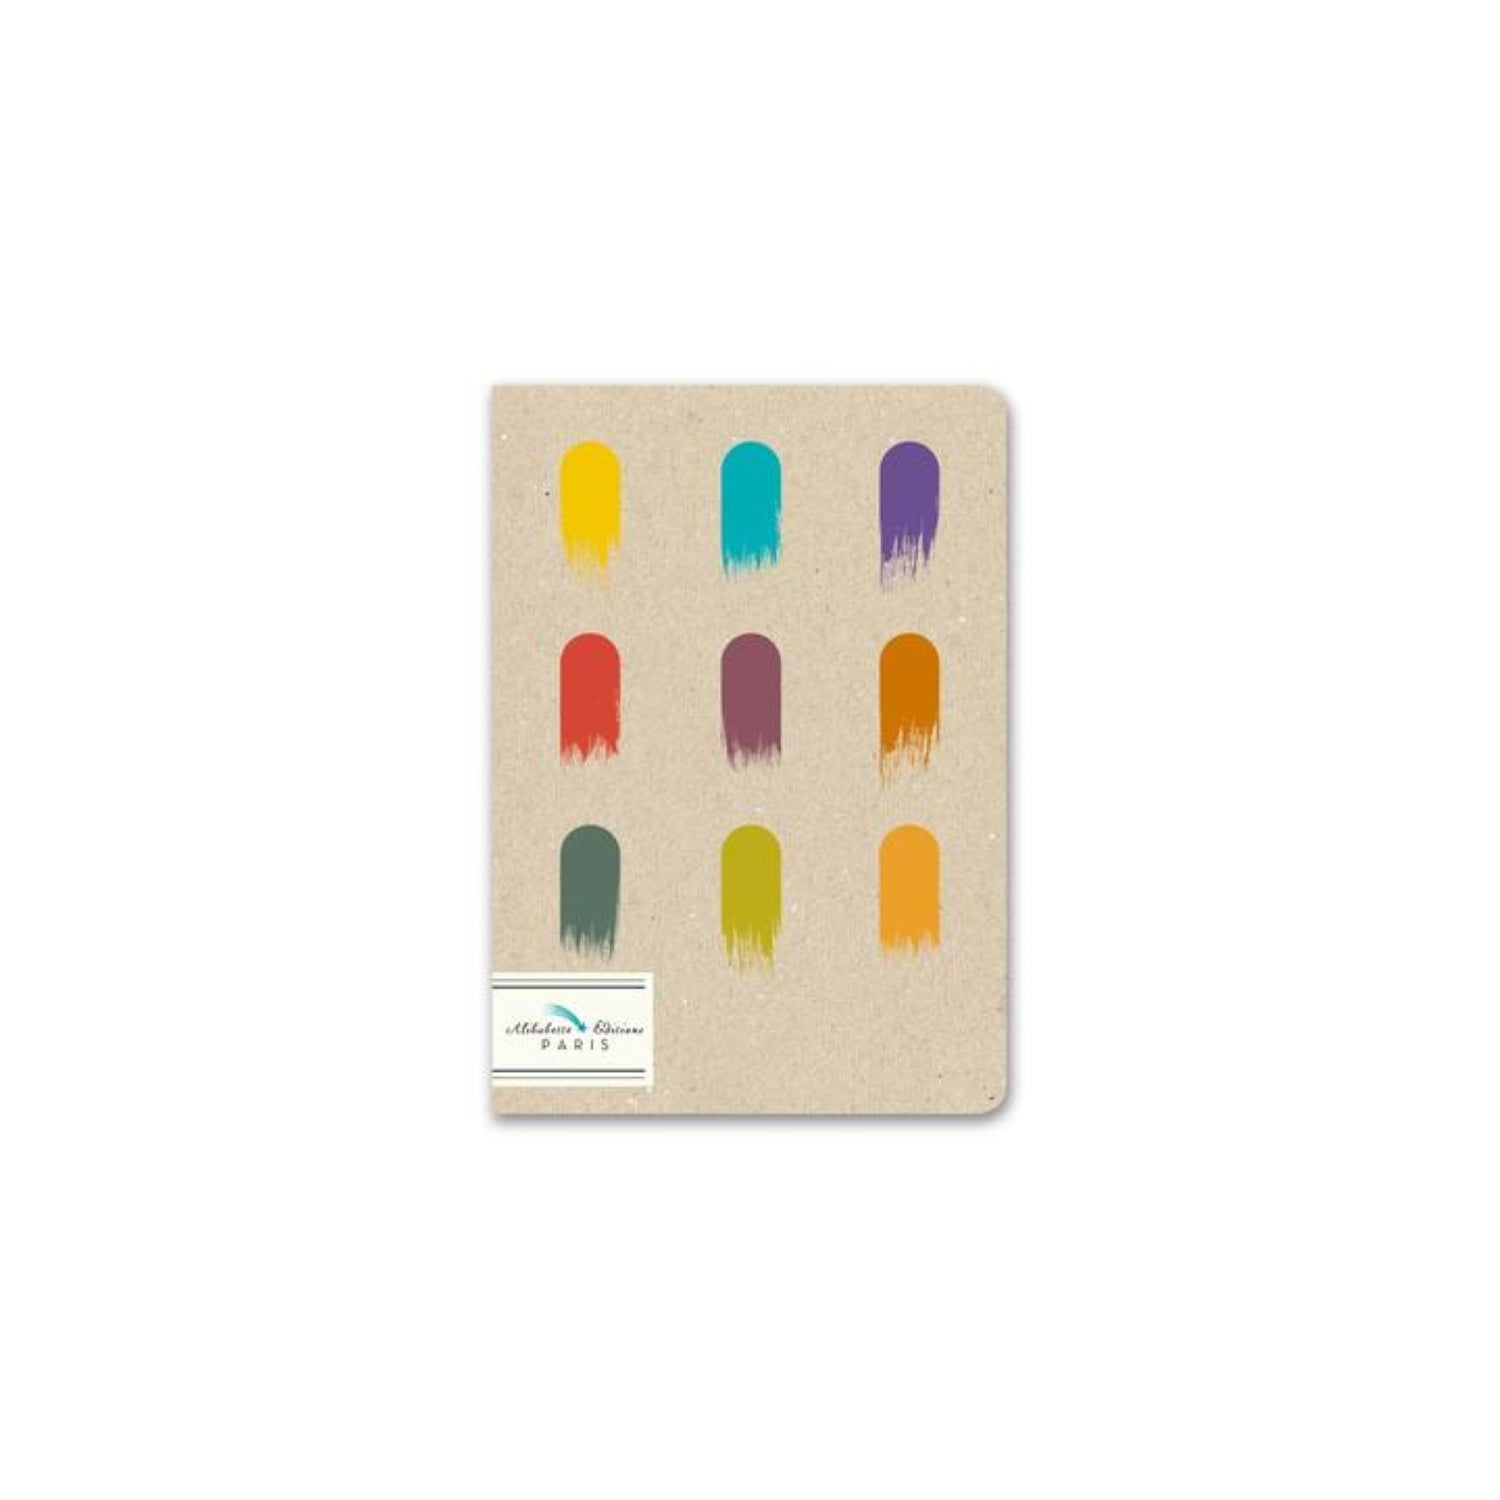 Alibabette Editions Composition Book B6 Plain - Gouaches